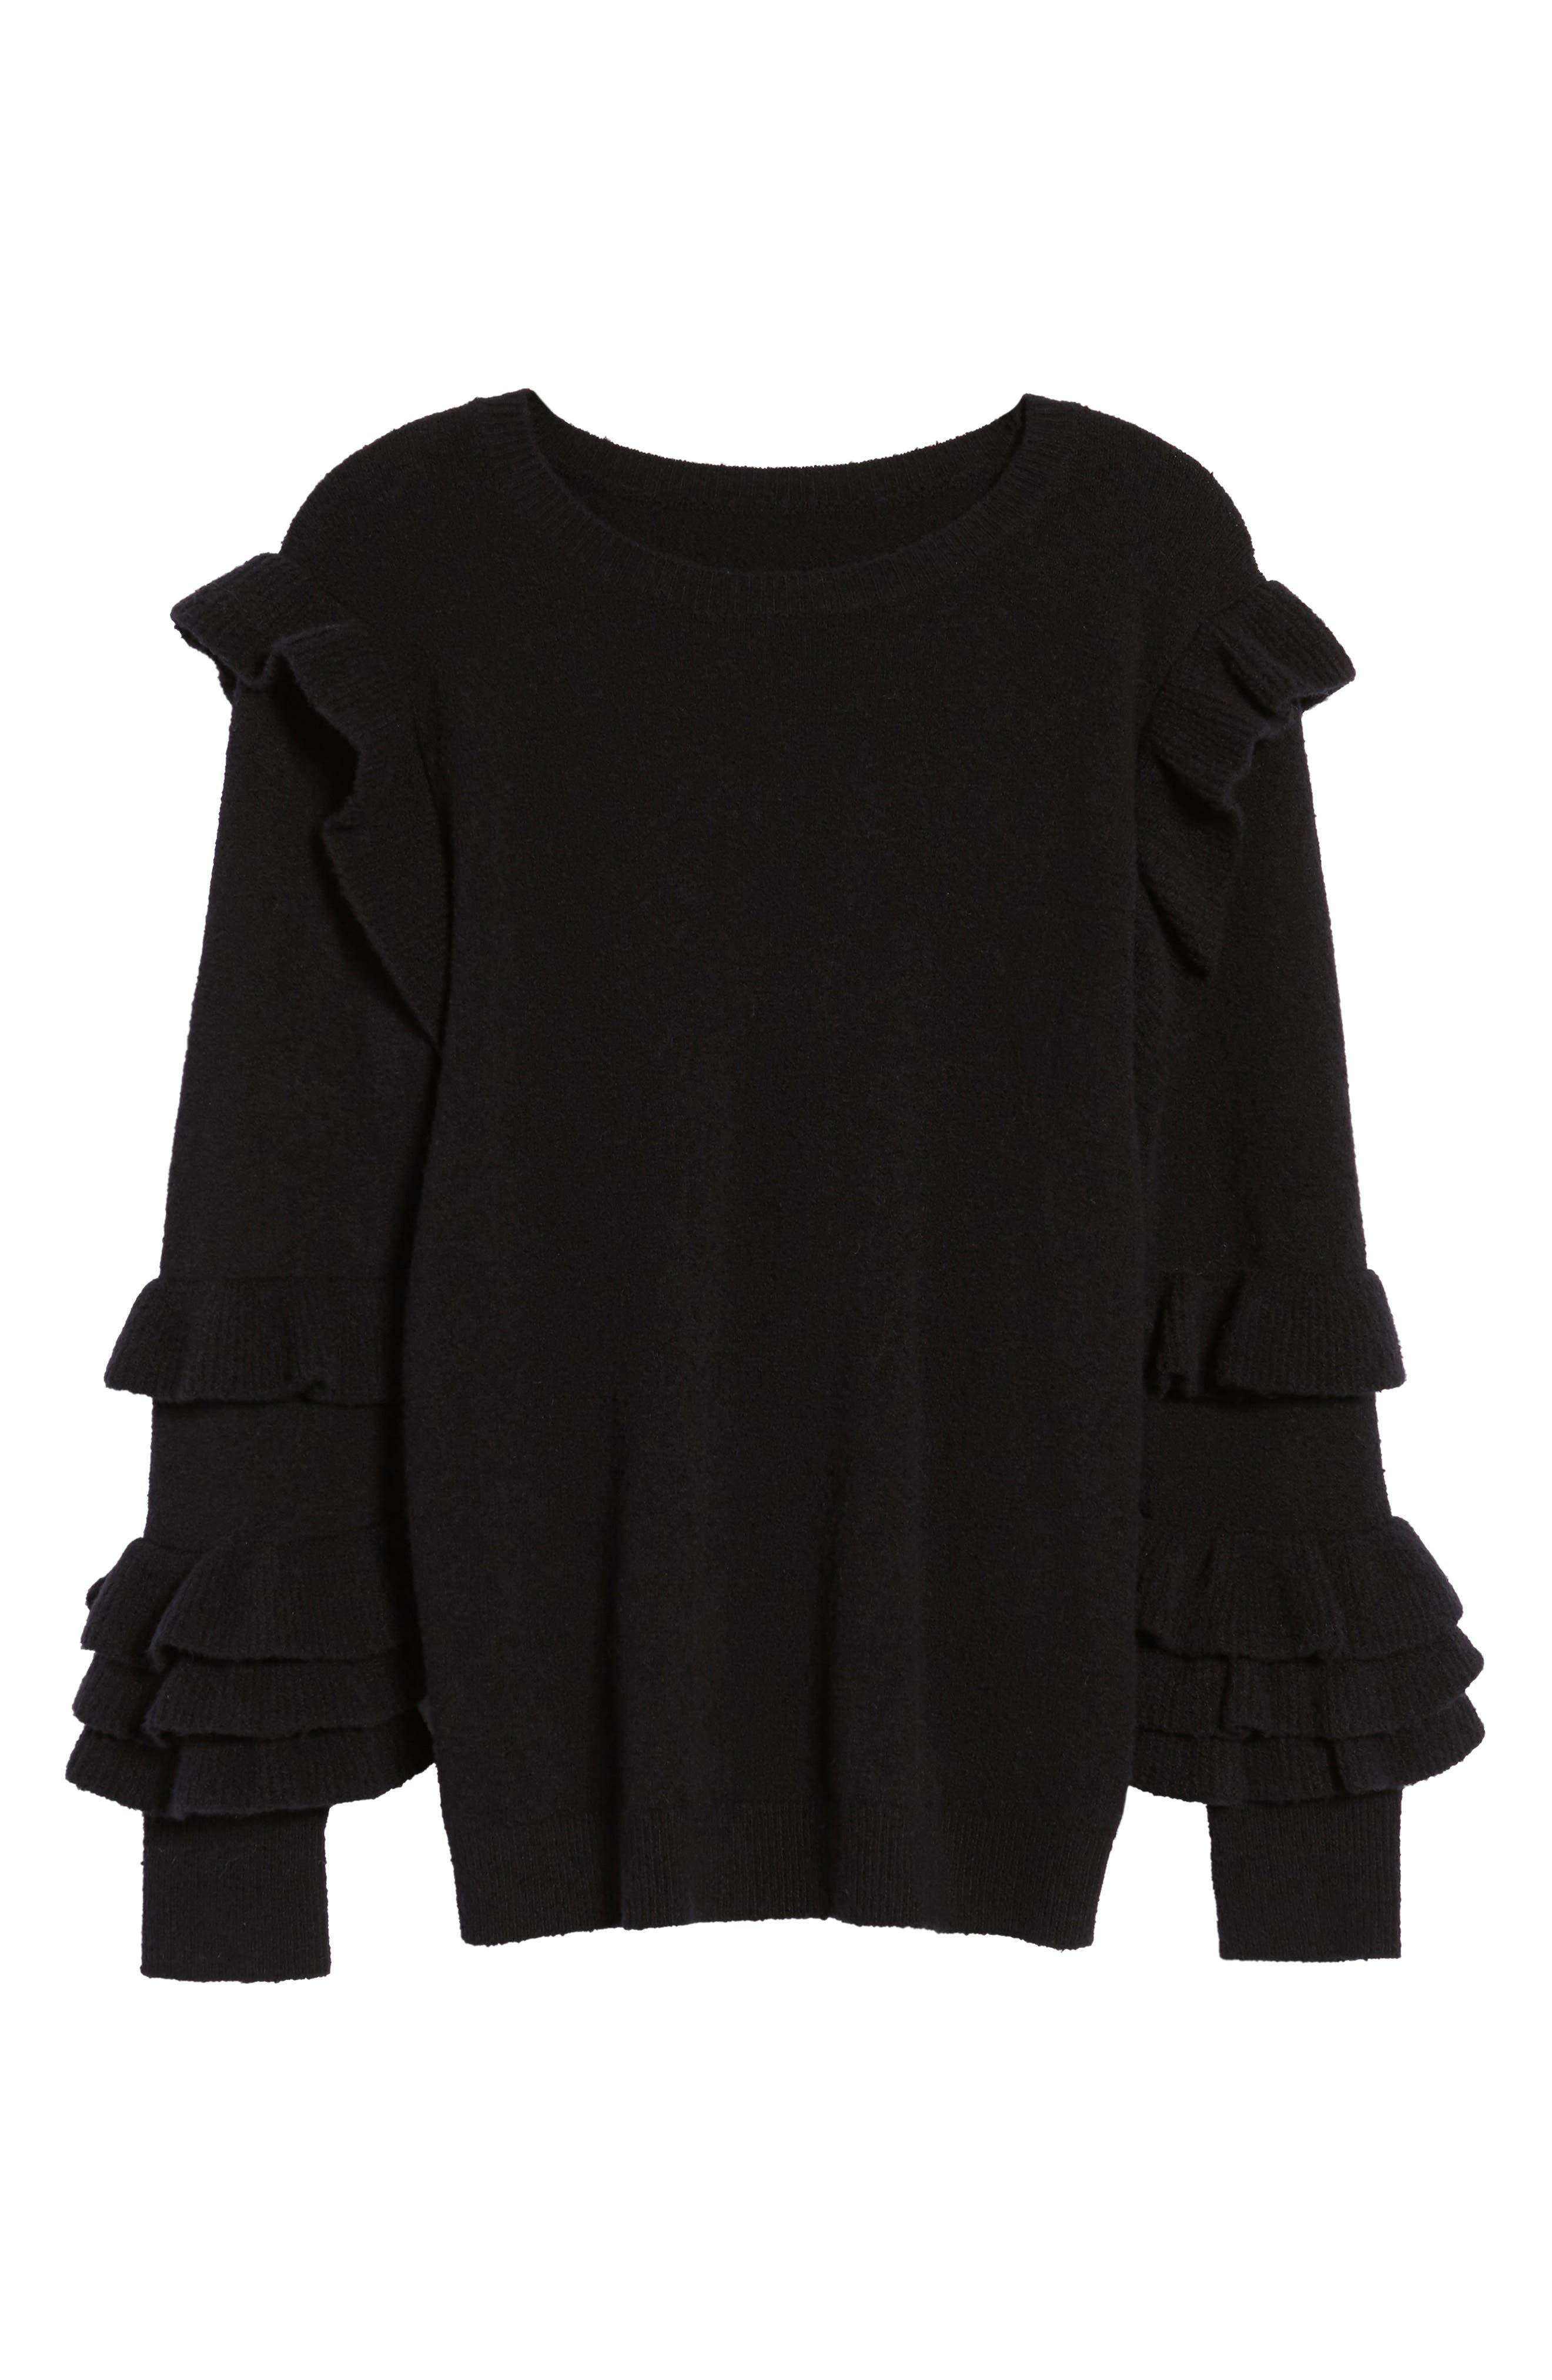 Ruffle Sleeve Sweater,                             Alternate thumbnail 6, color,                             Black